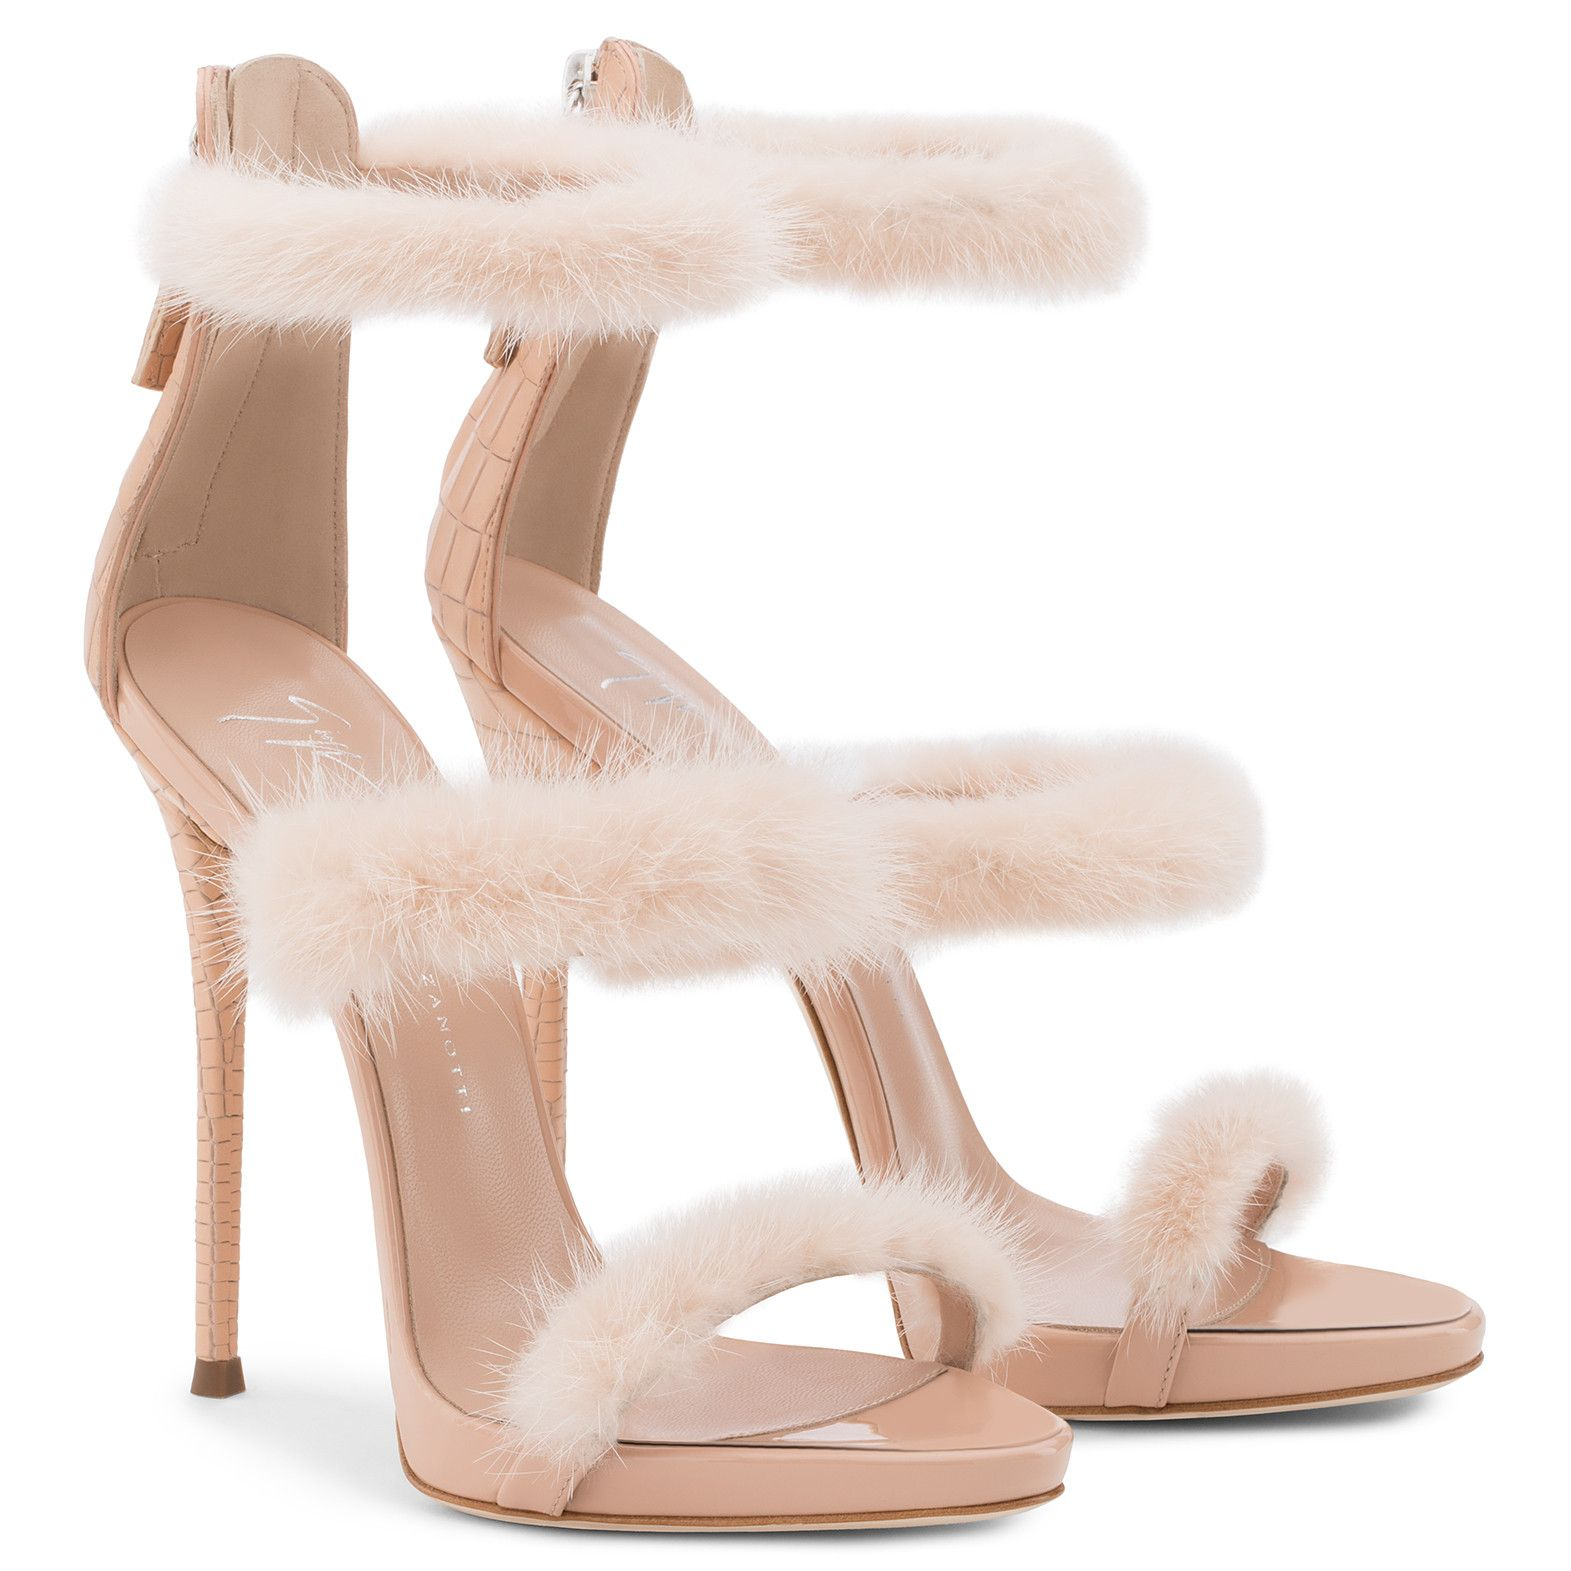 c2a81936ba178 Harmony Winter - Sandals - Pink | Giuseppe Zanotti ® | shoes ...